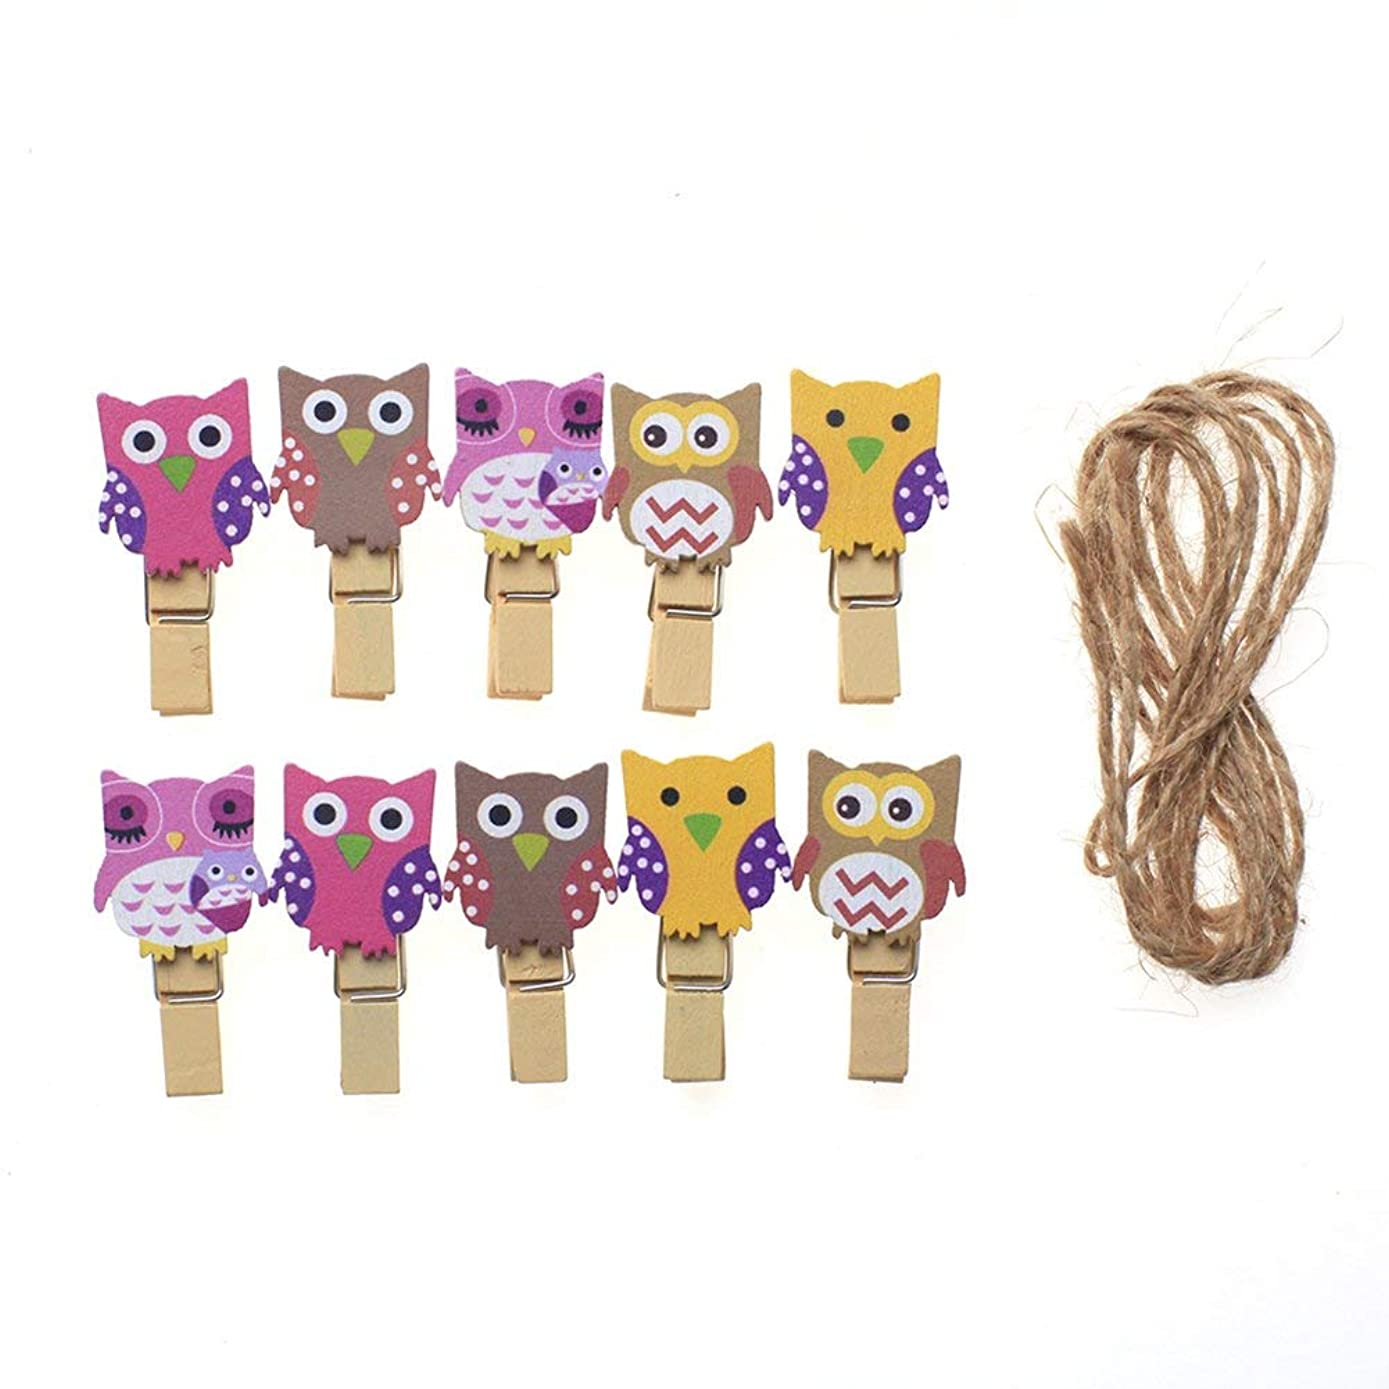 Teydhao DIY 30 Pcs Colorful Mini Photo Clips Natural Wooden Pegs for Photo Clothespins with Jute Twine Clips Clothes Mini Owl Decoration Hanging Photos Art Craft Picture for Bedroom Wall Kids Room